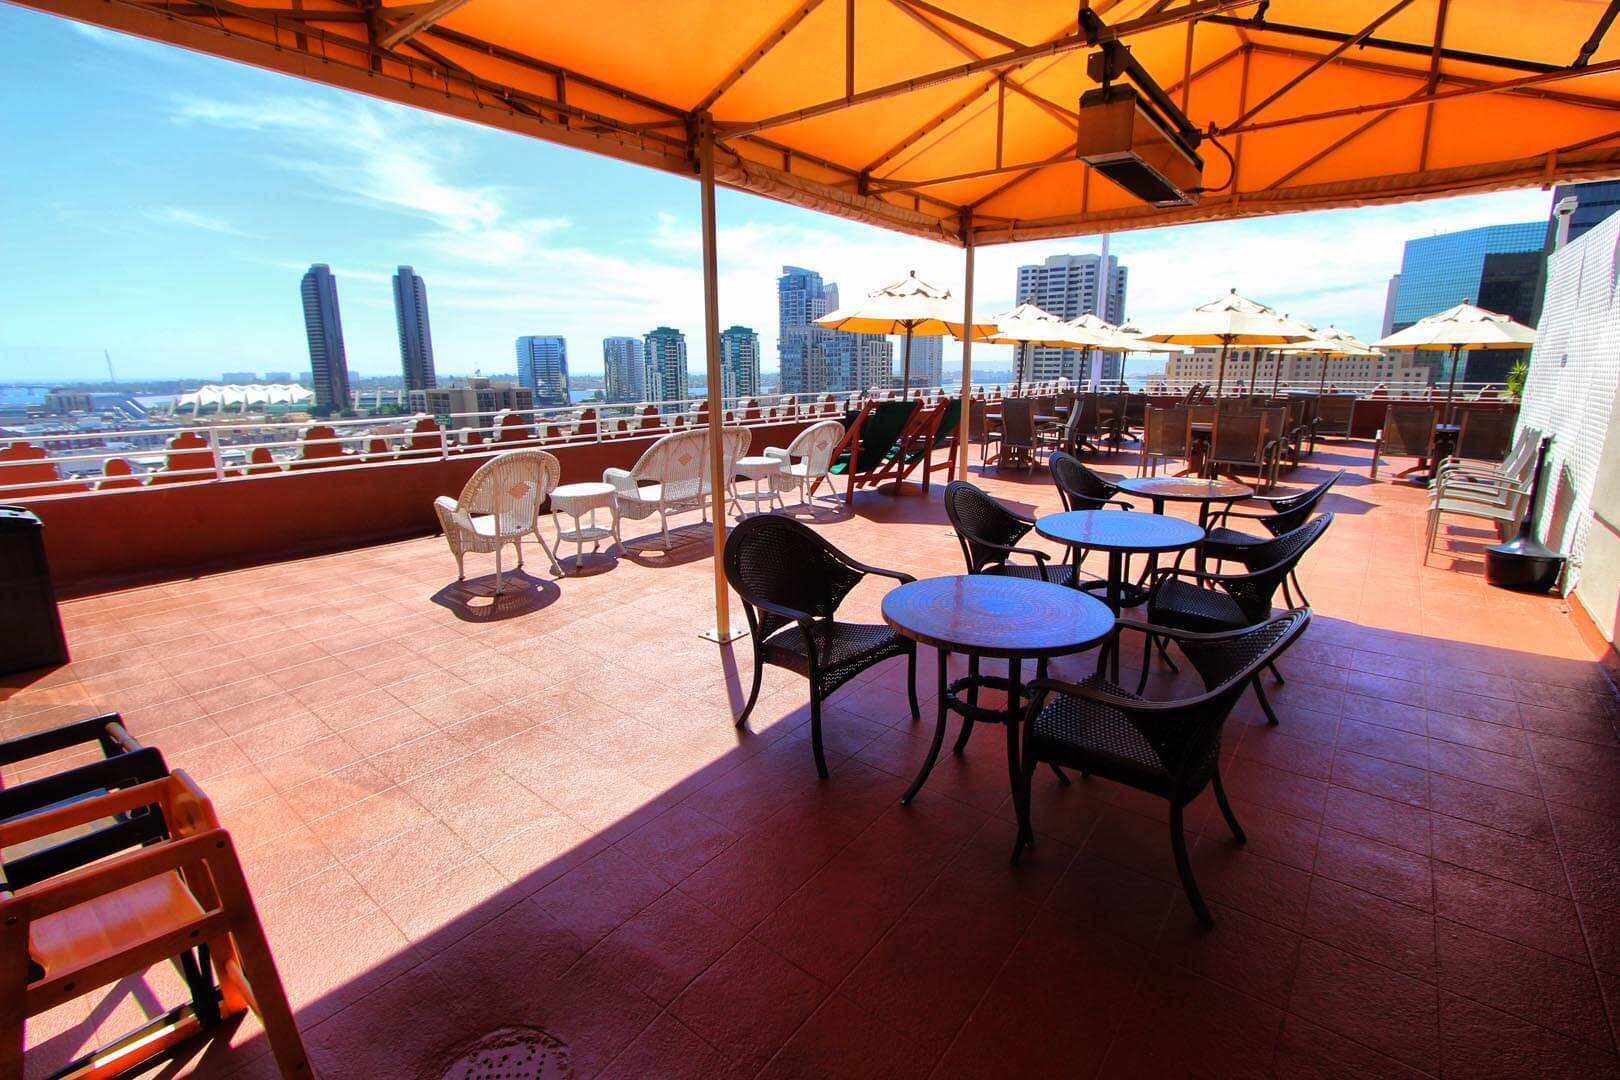 Gaslamp Plaza Resort Deck